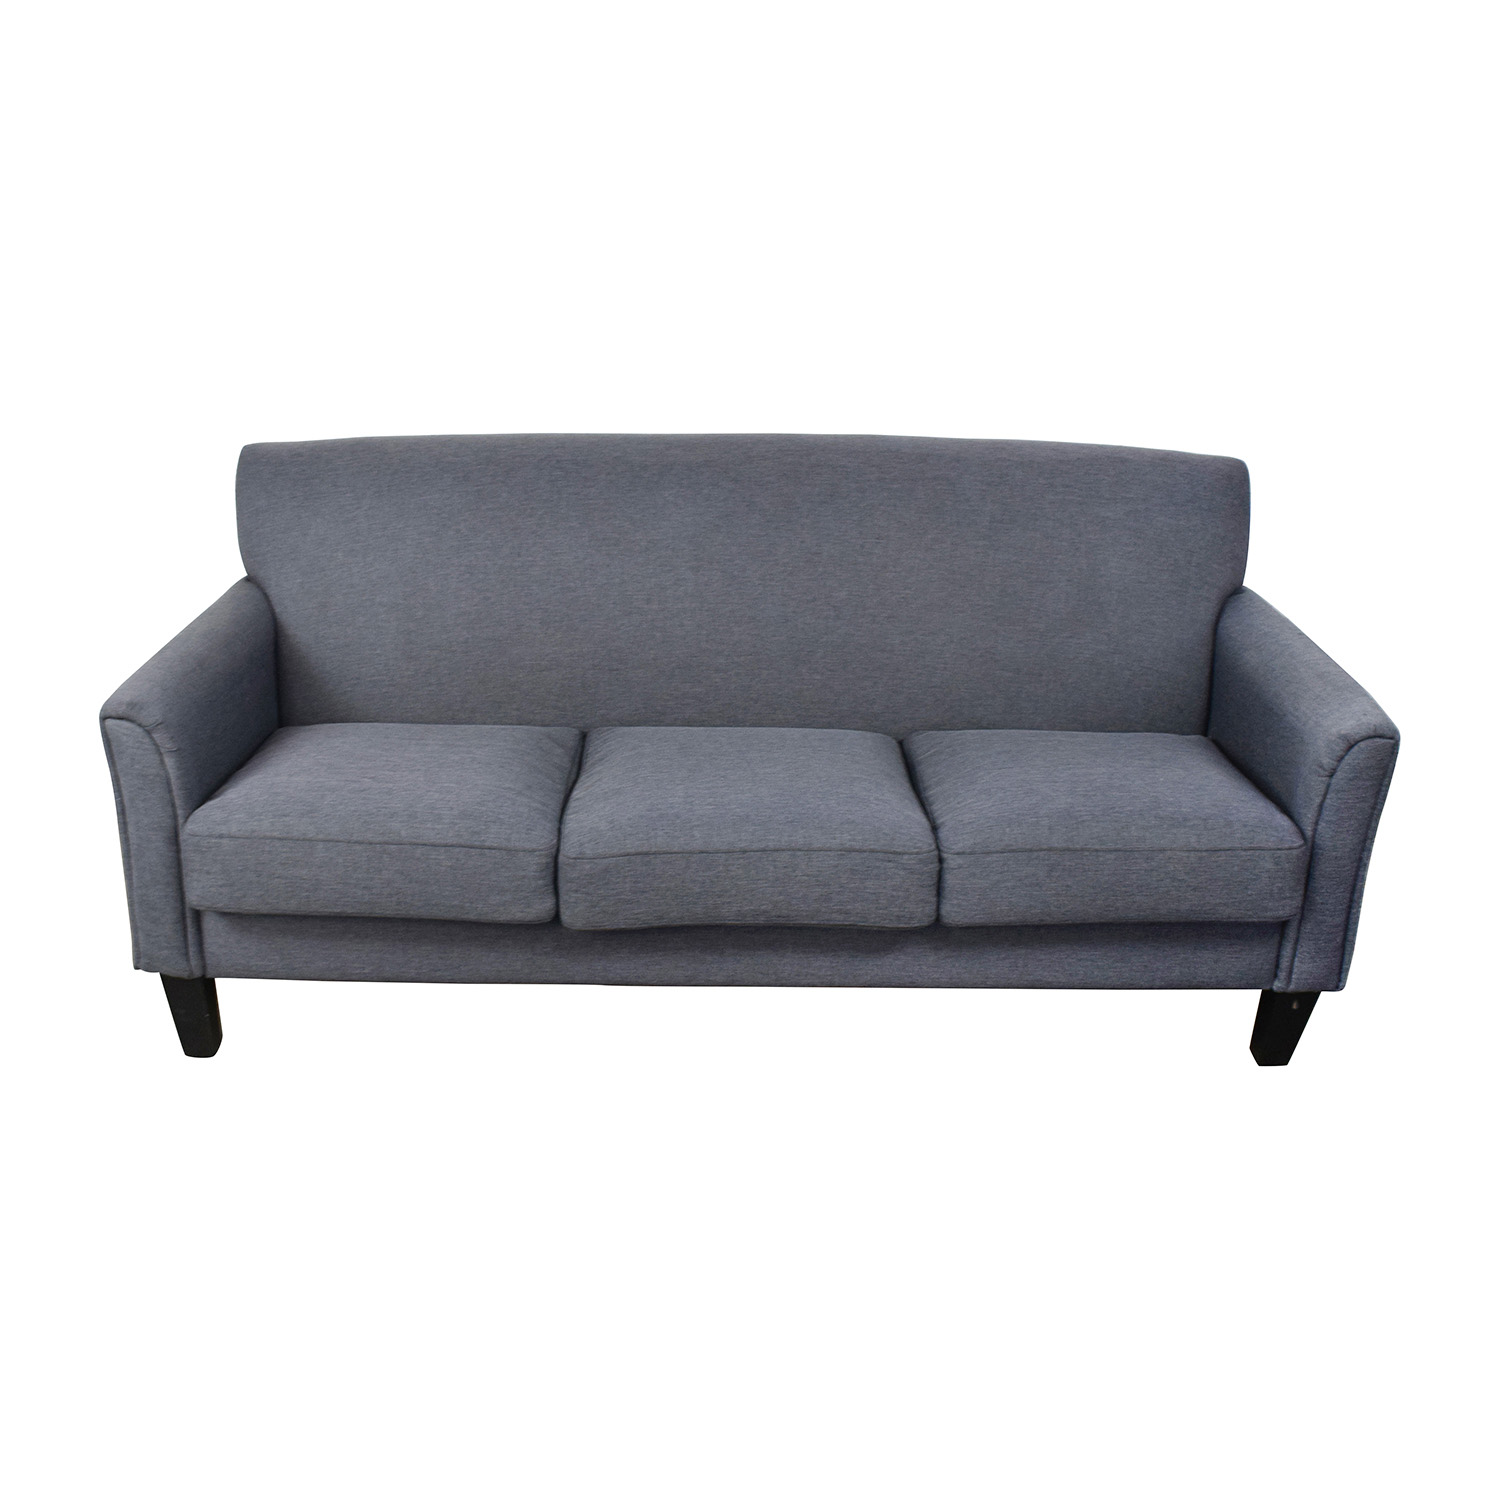 Tribecca Home Uptown Modern Sofa sale